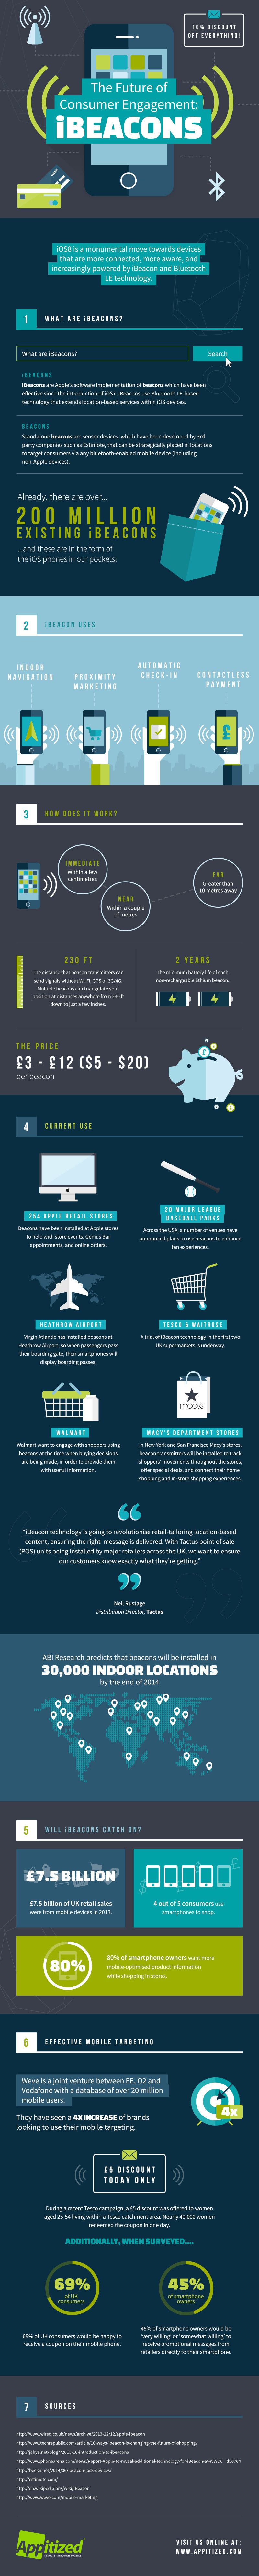 Infographic: iBeacons: The Future of Consumer Engagement #infographic